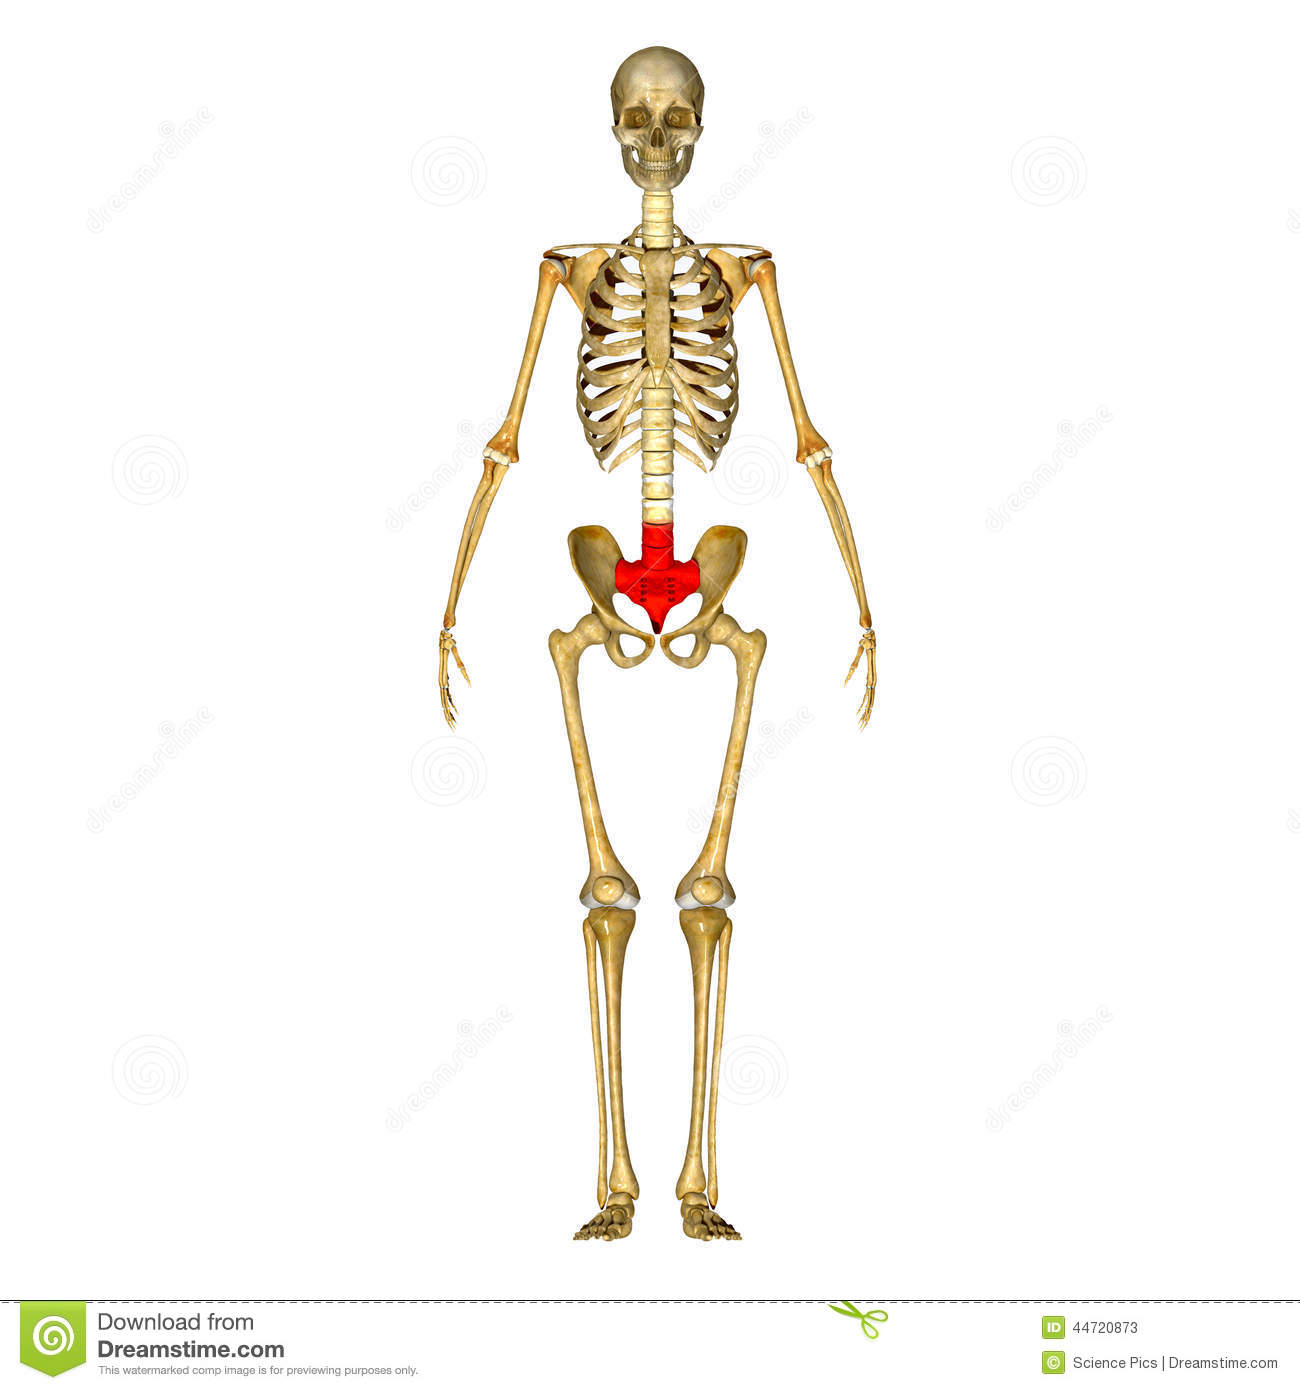 Sacrum Stock Illustration - Image: 44720873